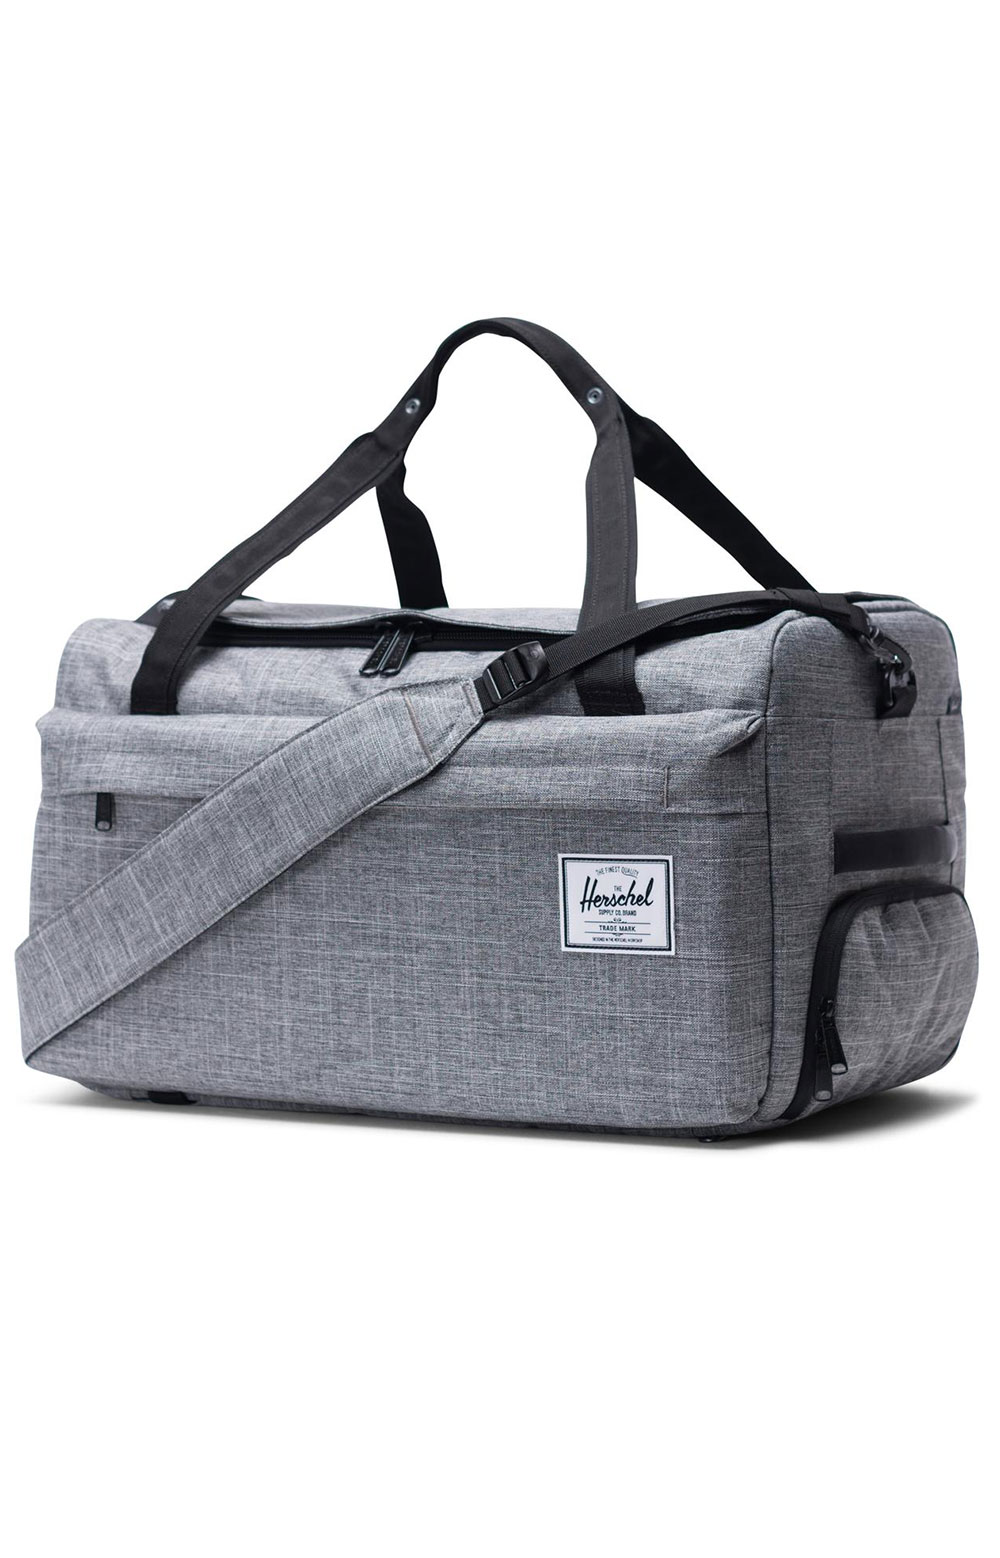 Outfitter Luggage 50L - Raven X  2